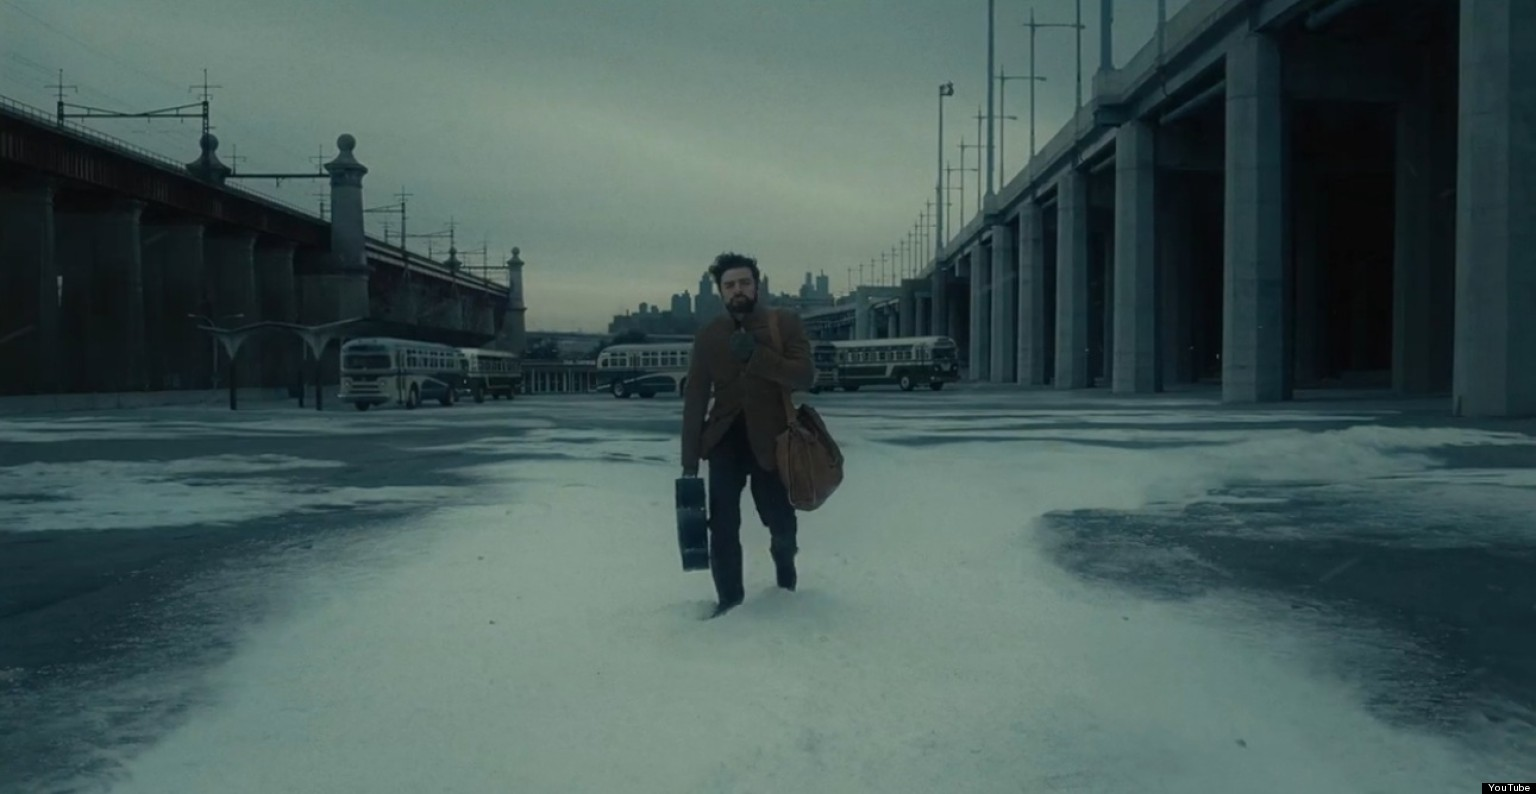 WATCH: New Coen Brothers Film Gets Surprise Trailer